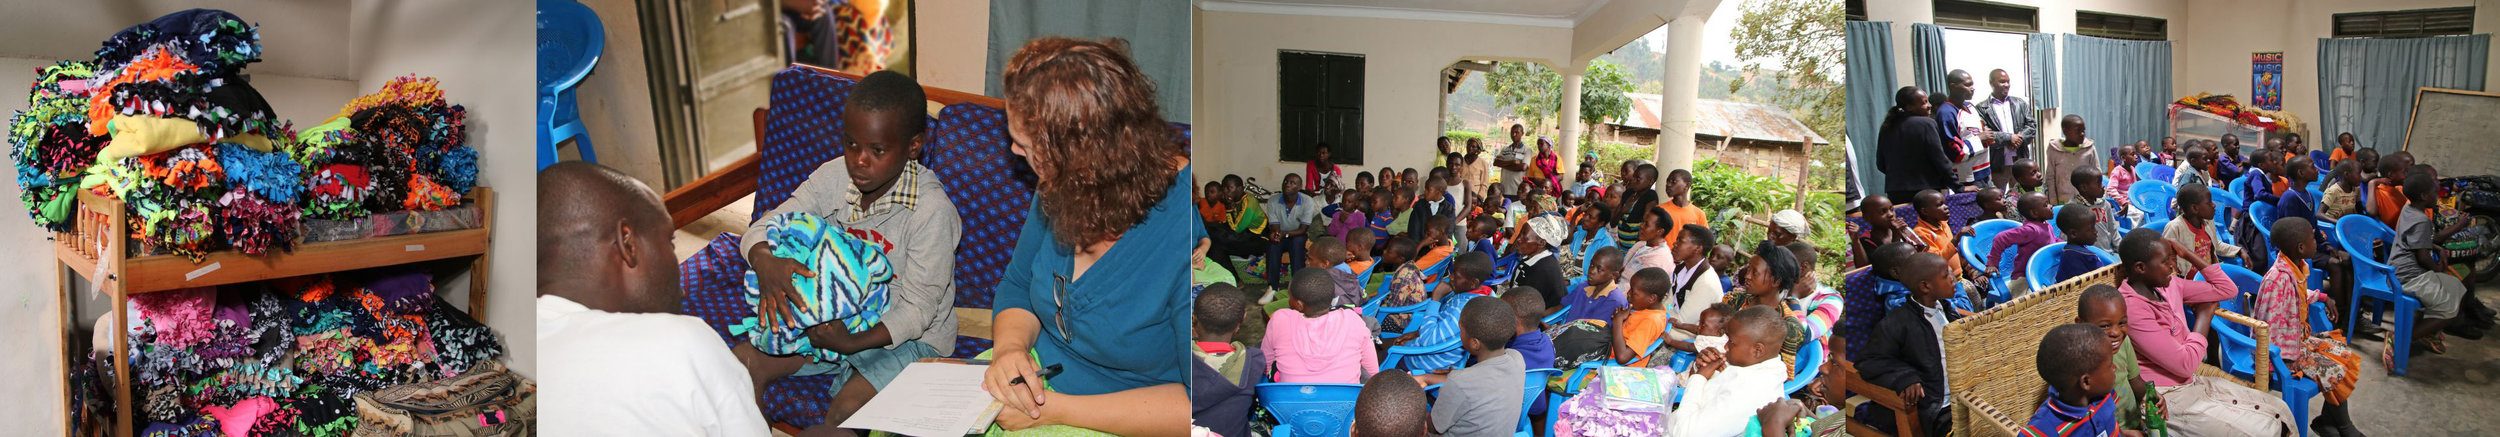 Blankets for the kids; Orphan interview; Meeting with sponsors and orphans; Watching movie.